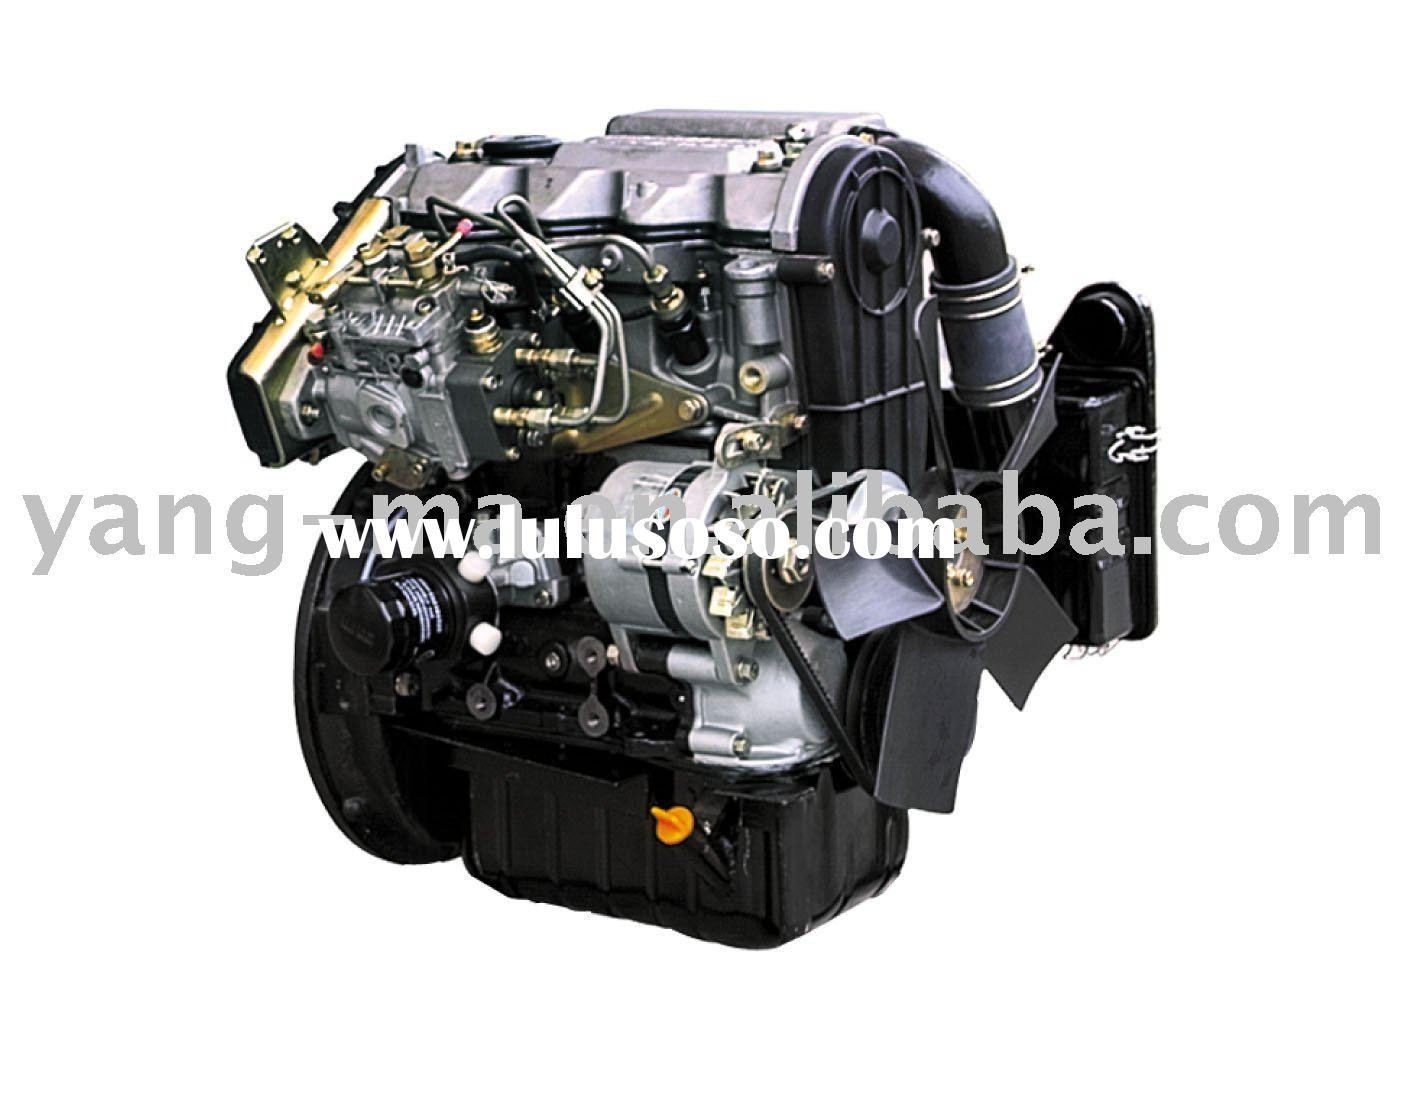 15.8KW water cooled 4 stroke portable marine diesel engine(With gear box)